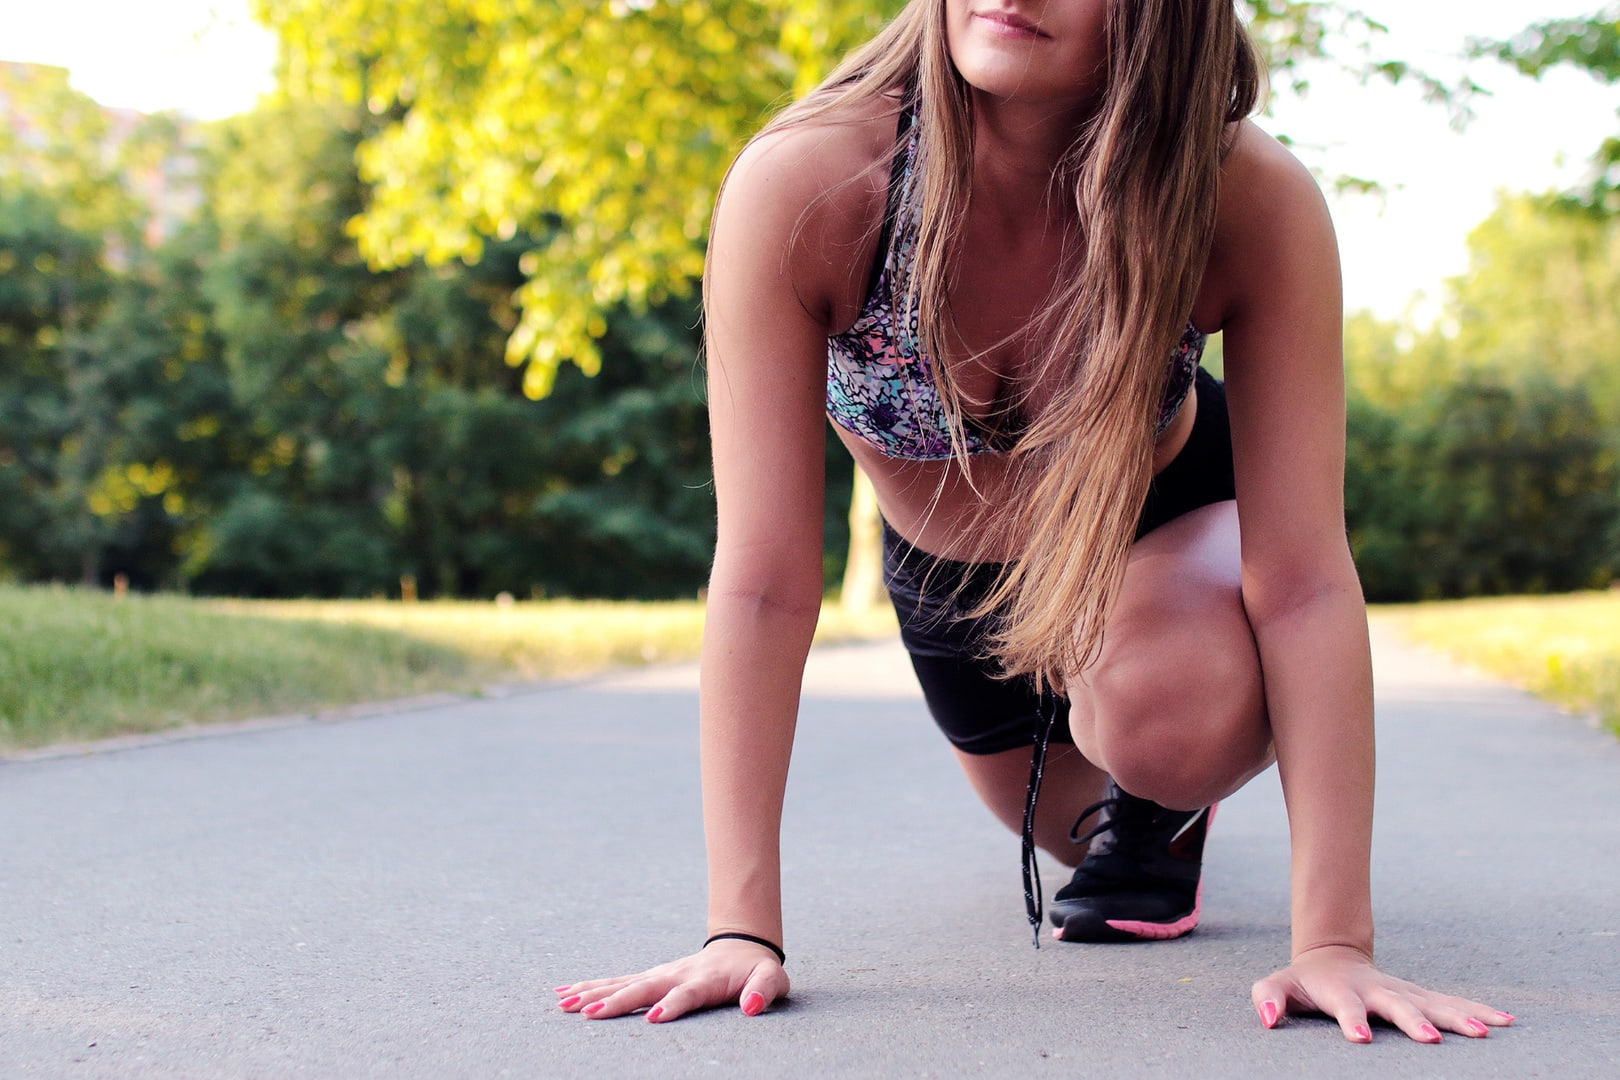 Blonde woman stretching outdoors